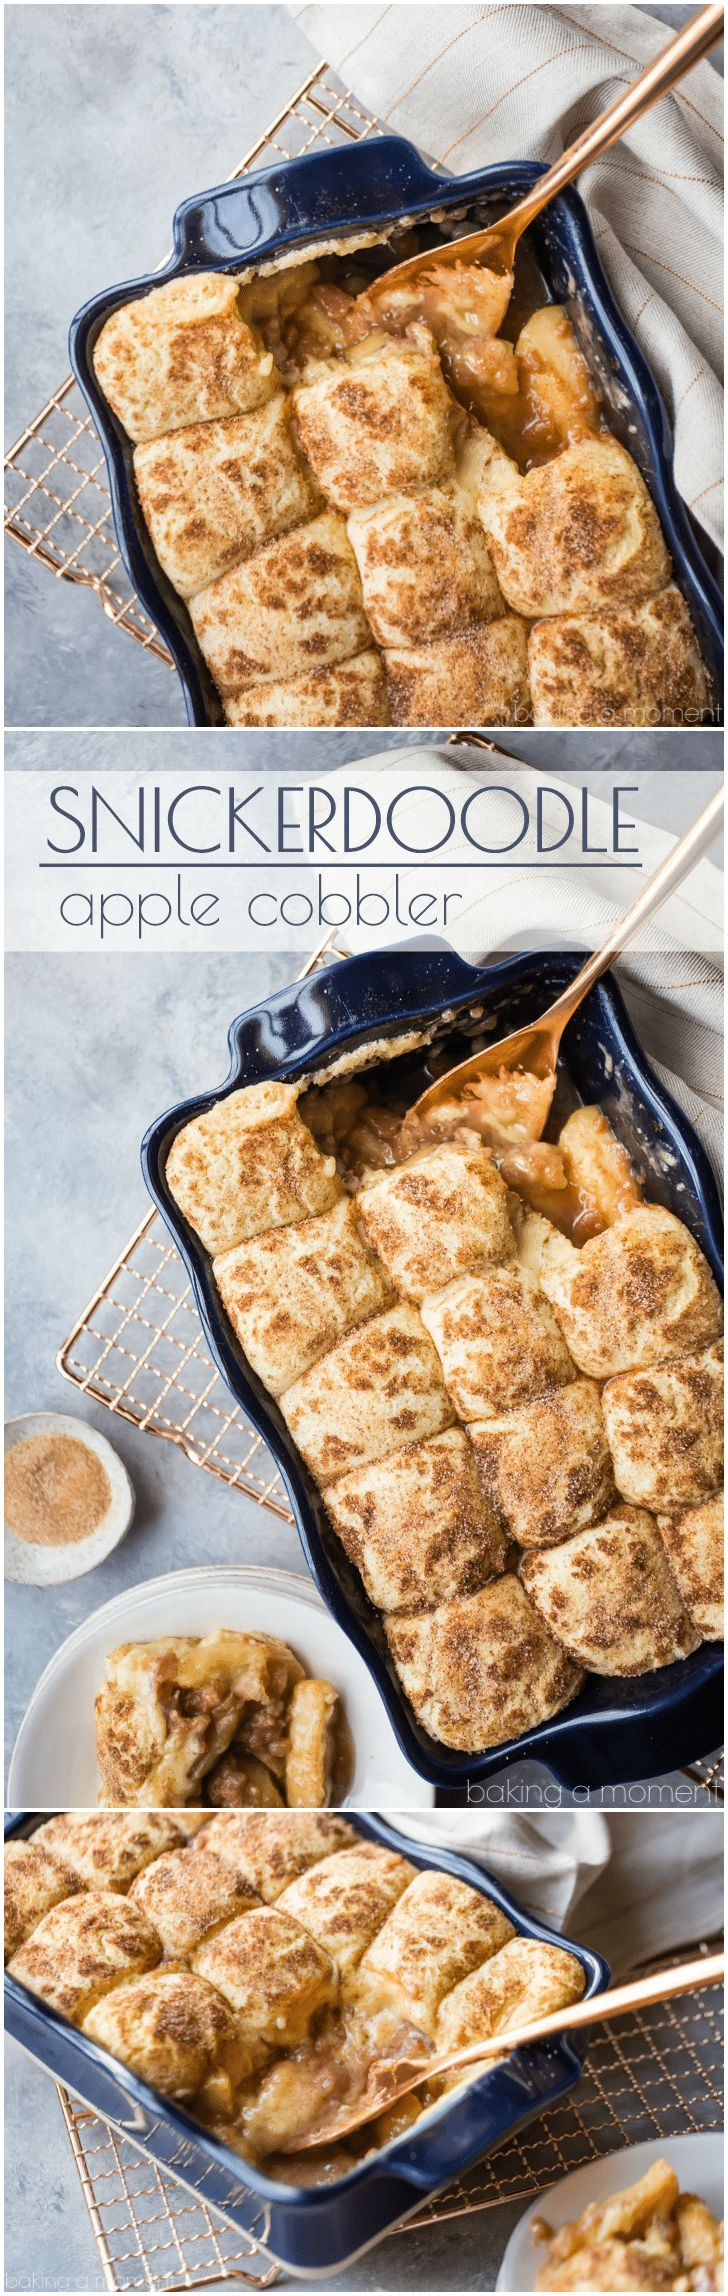 Snickerdoodle Apple Cobbler. #fall #Thanksgiving #desserts